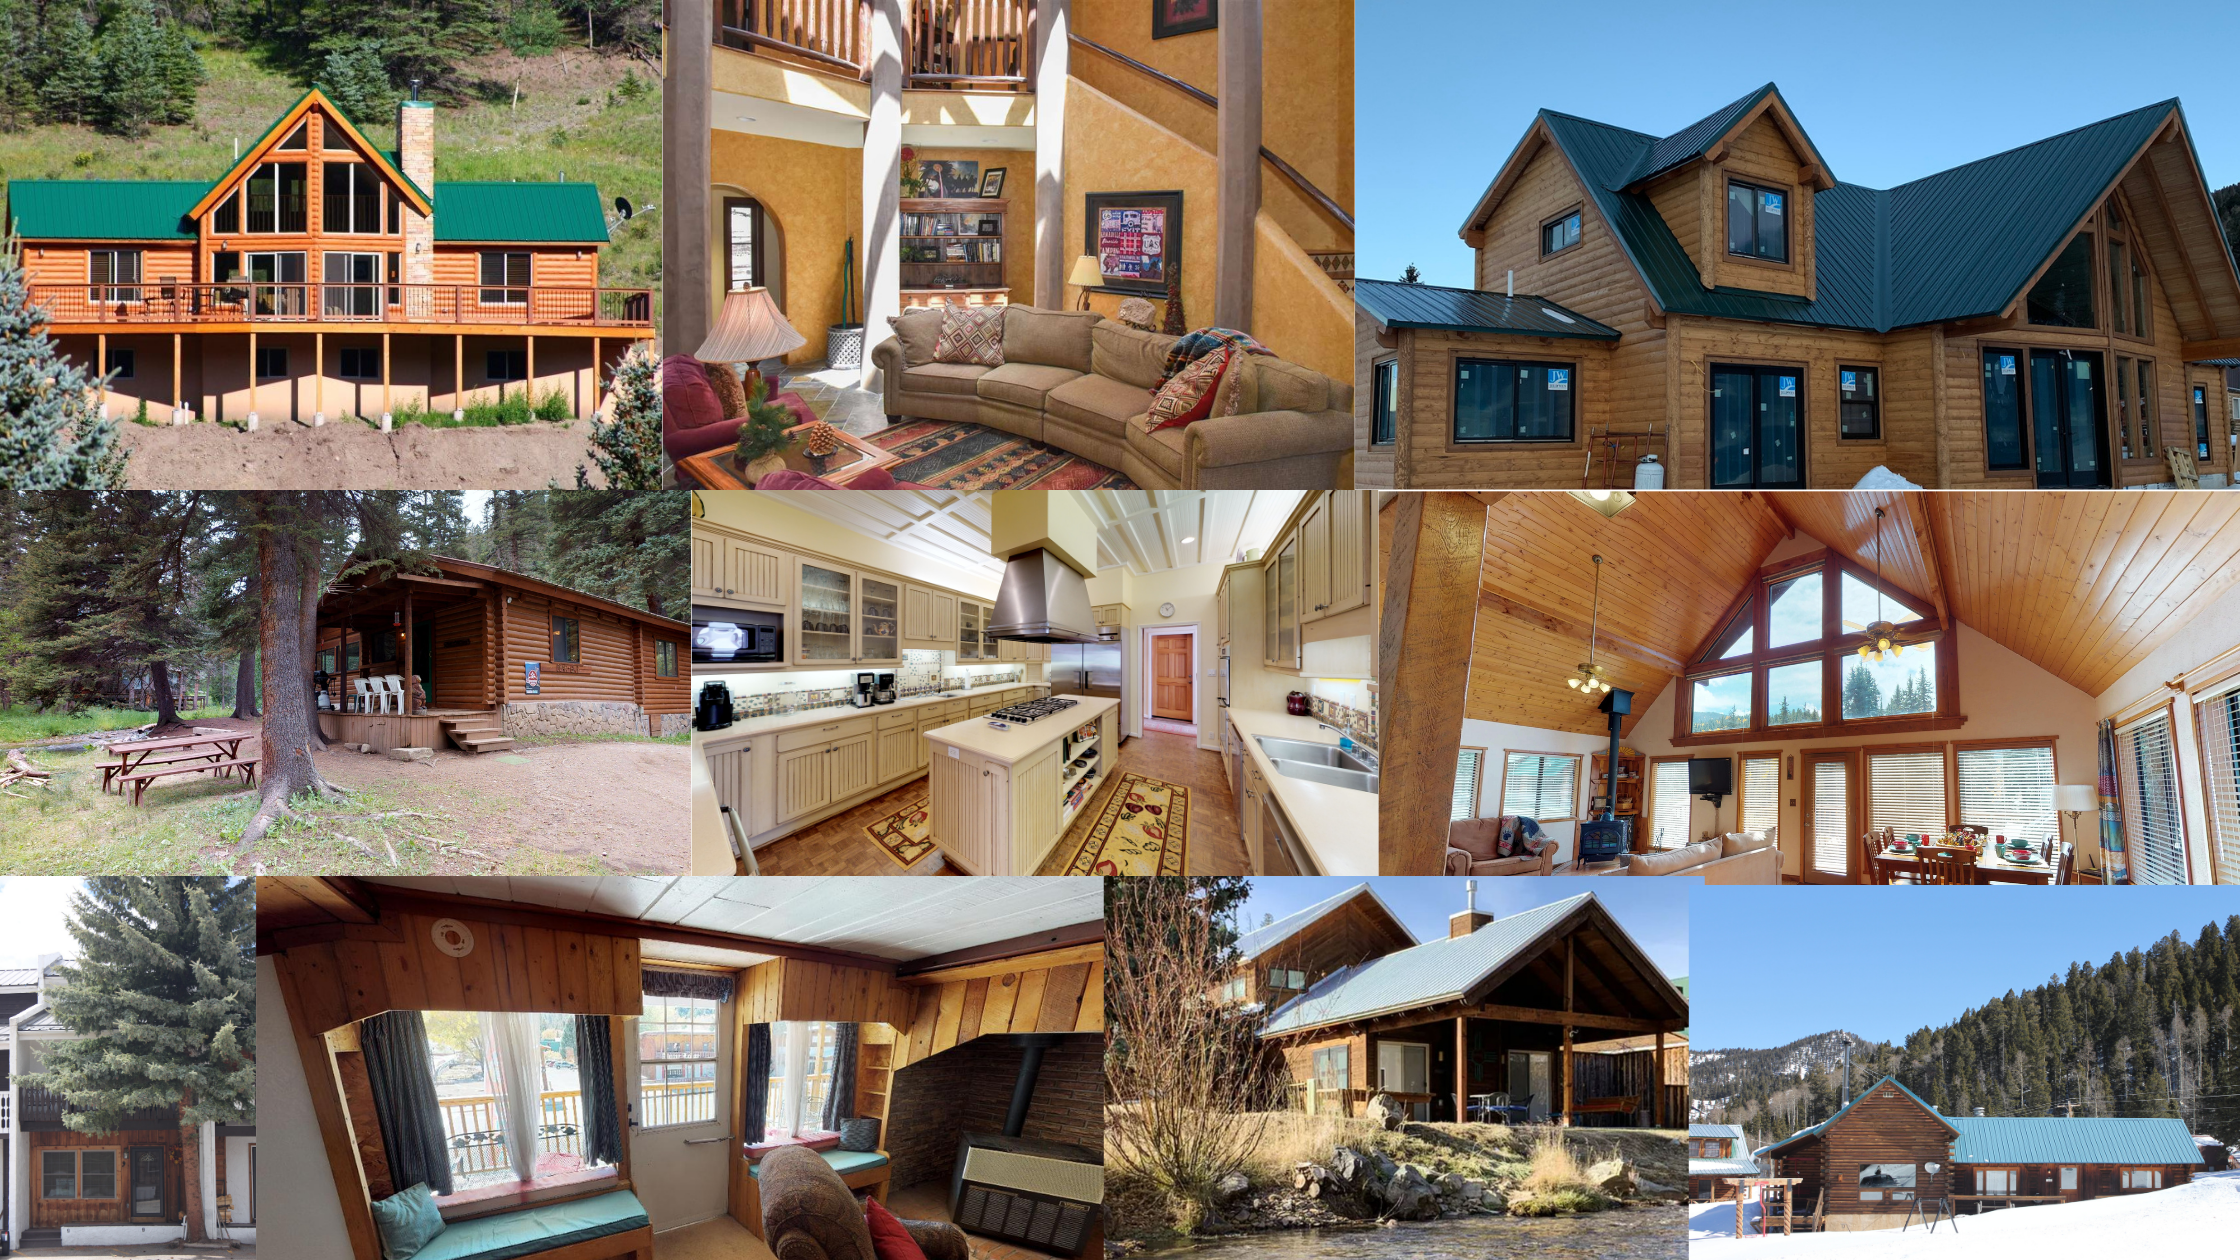 Vacation Rentals in Red River NM